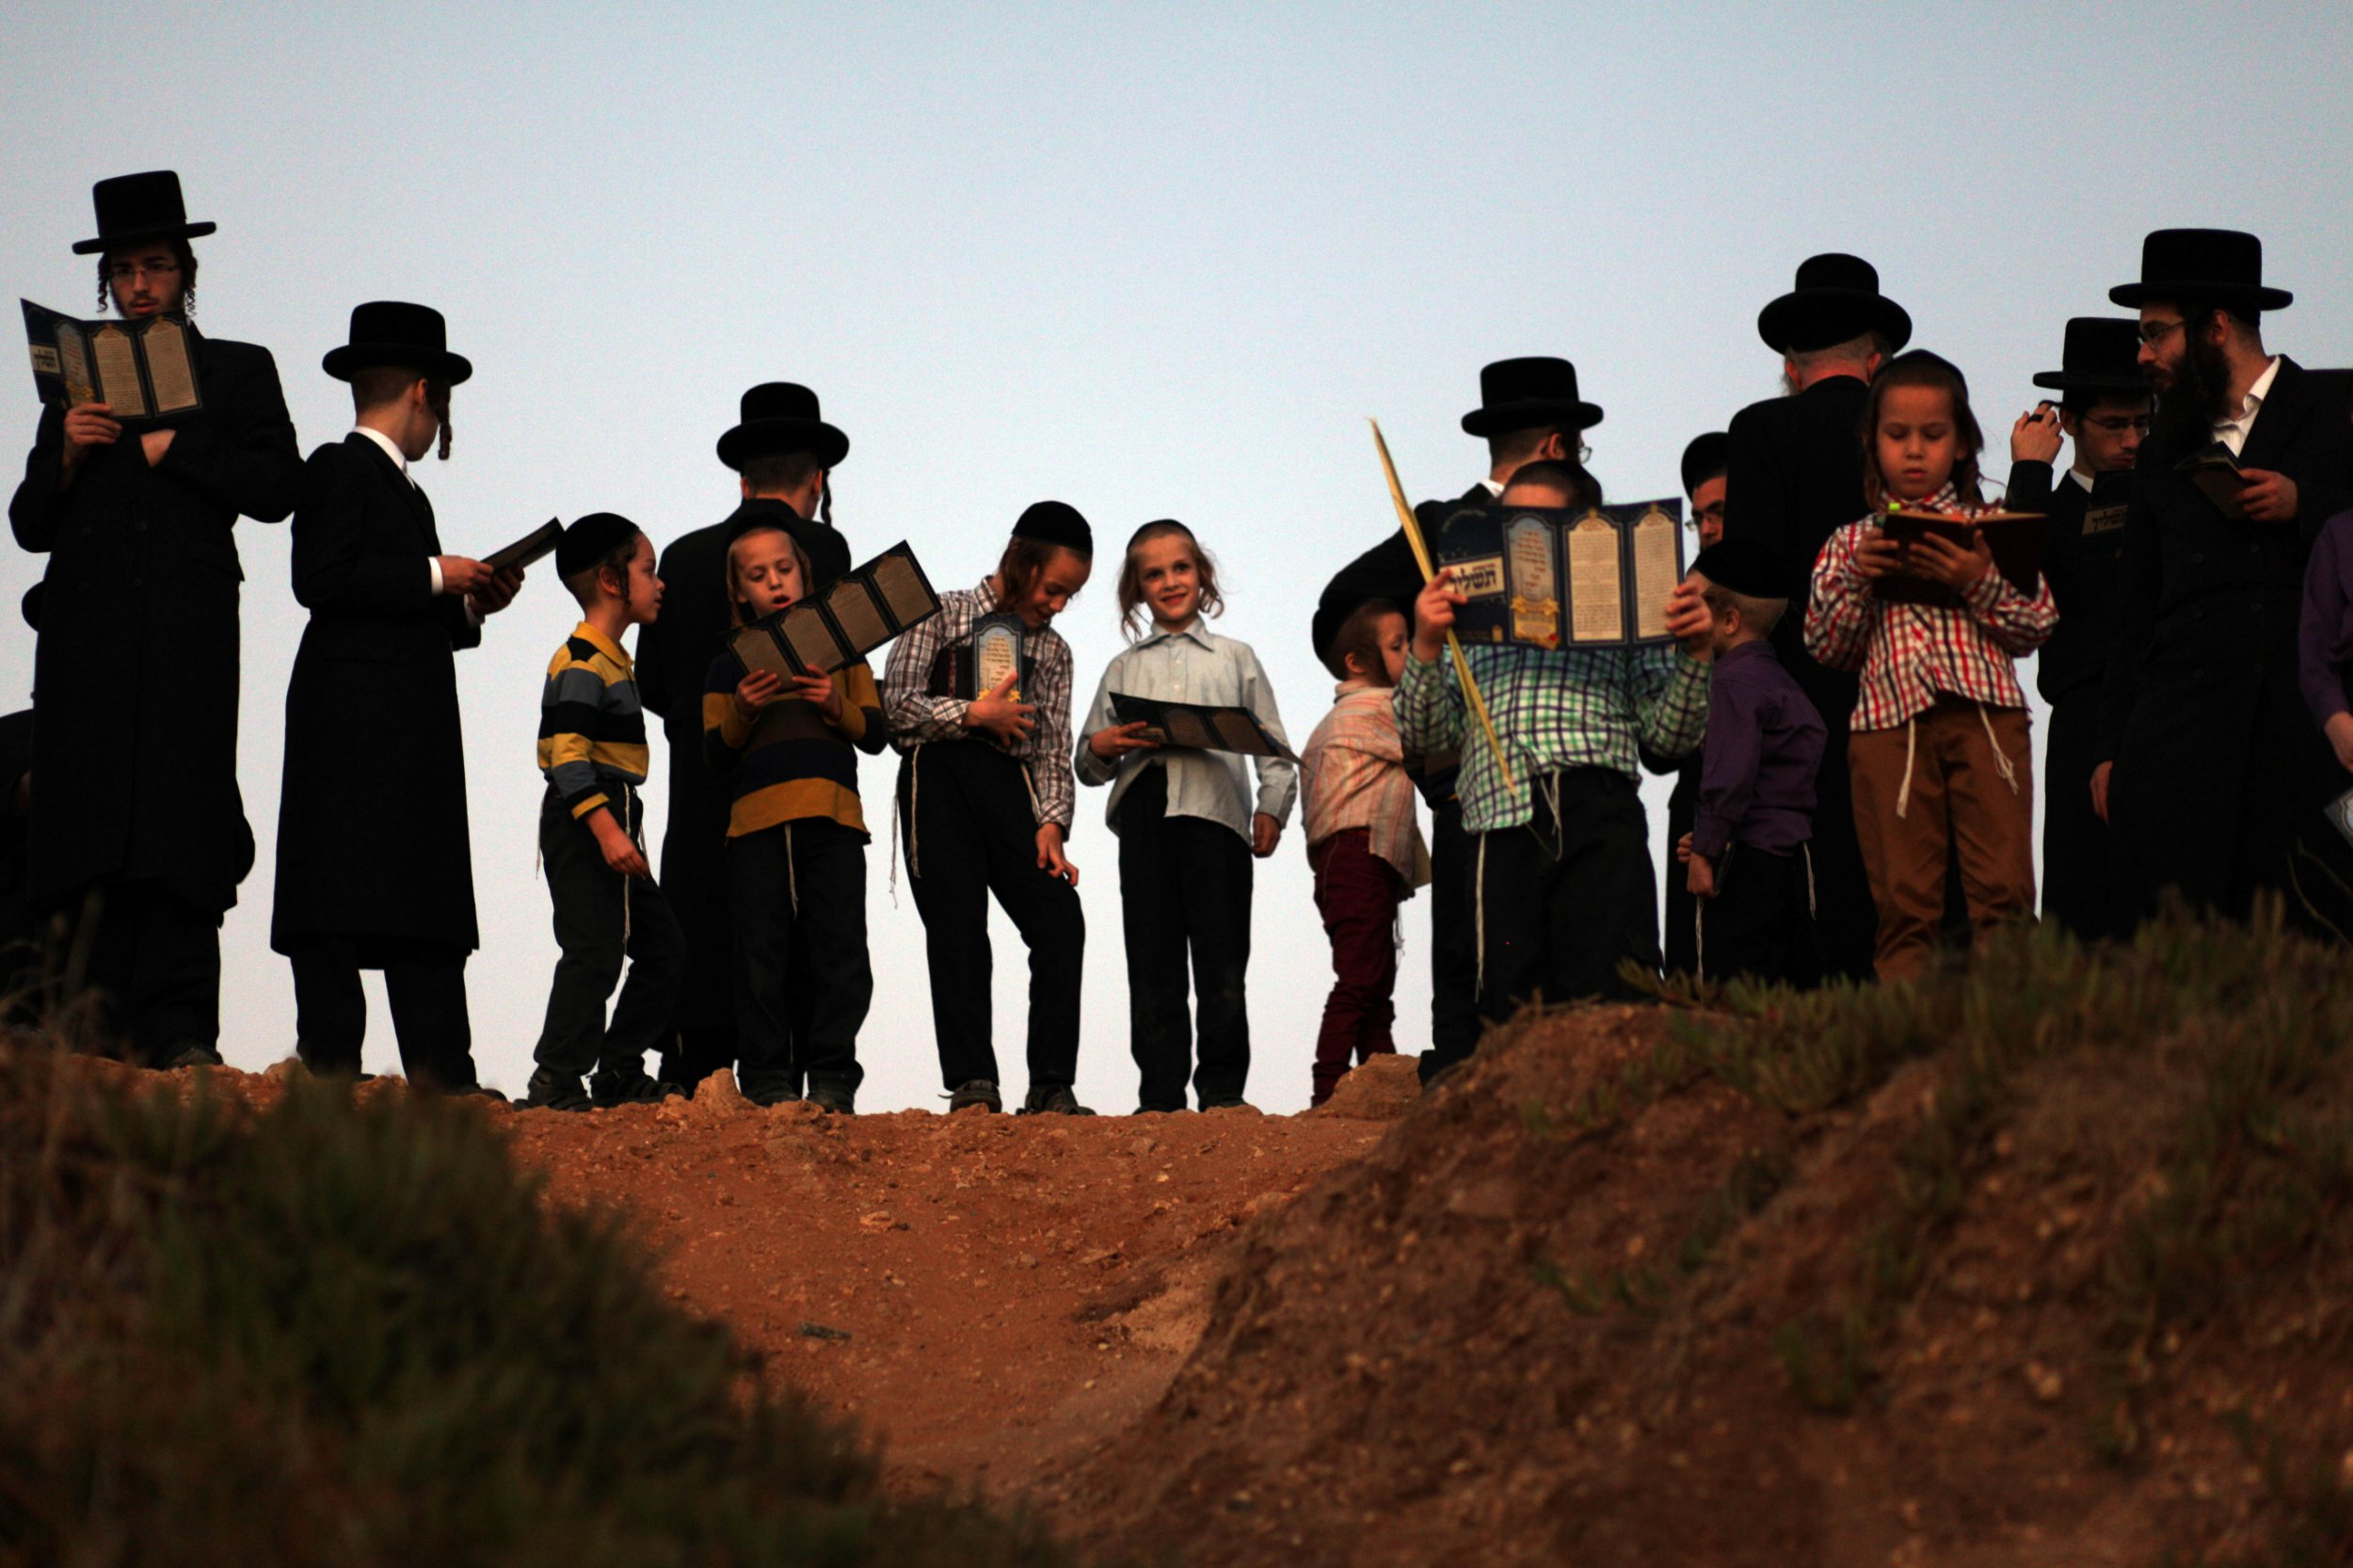 Yom Kippur 2018: All you need to know about the holiest day in the Jewish calendar